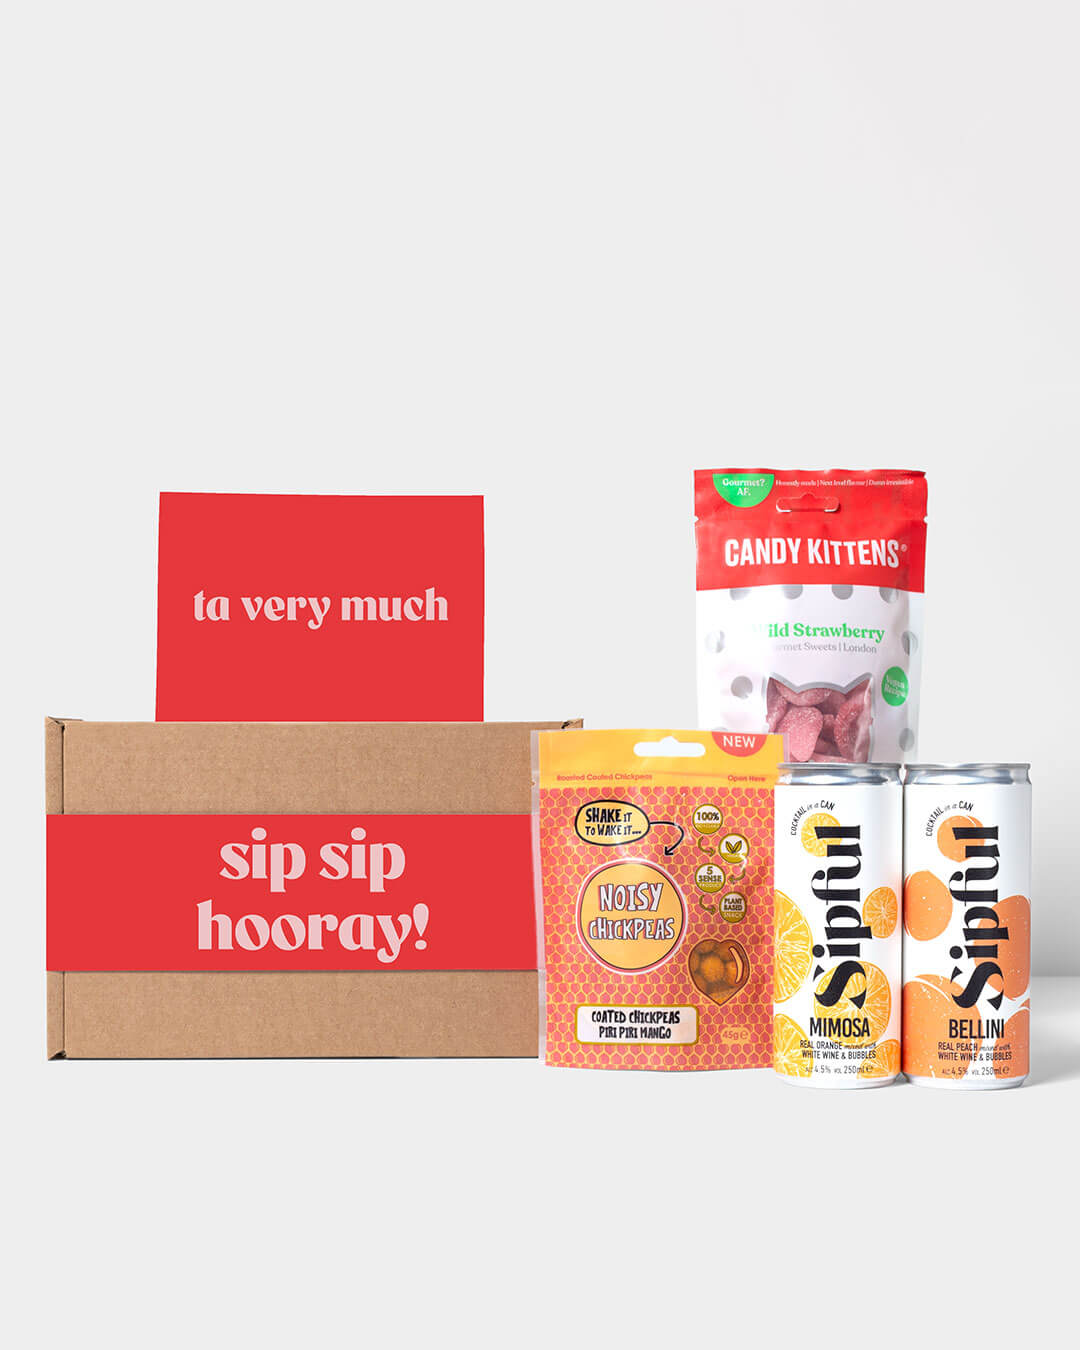 Contents of cocktail box, Sipful Cocktail Cans, Noisy Snacks & Candy Kittens